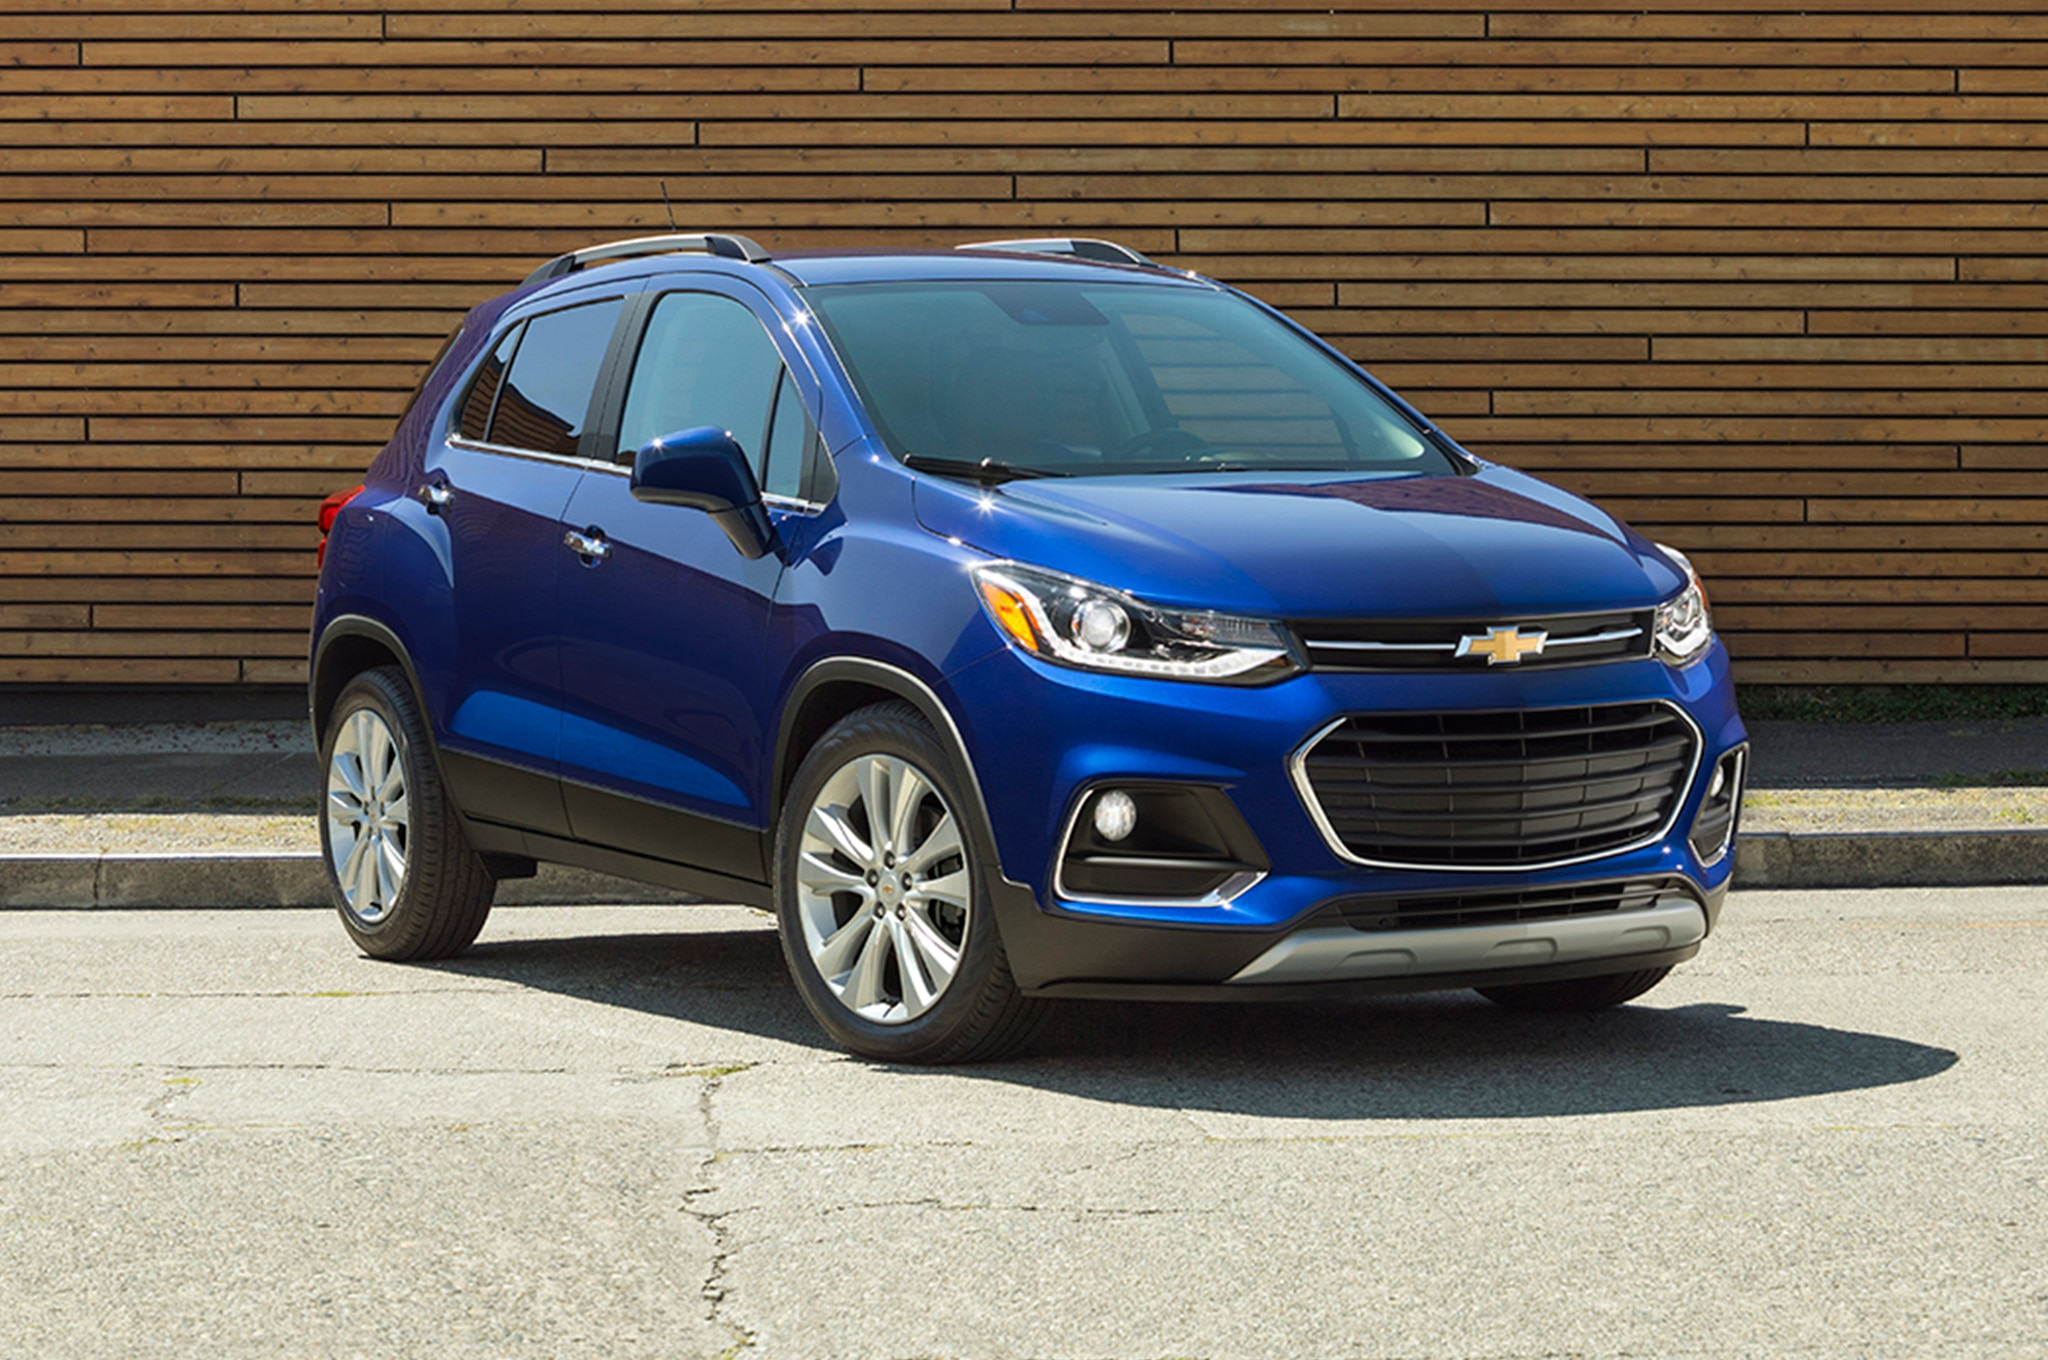 First Drive: 2017 Chevrolet Trax | Automobile Magazine